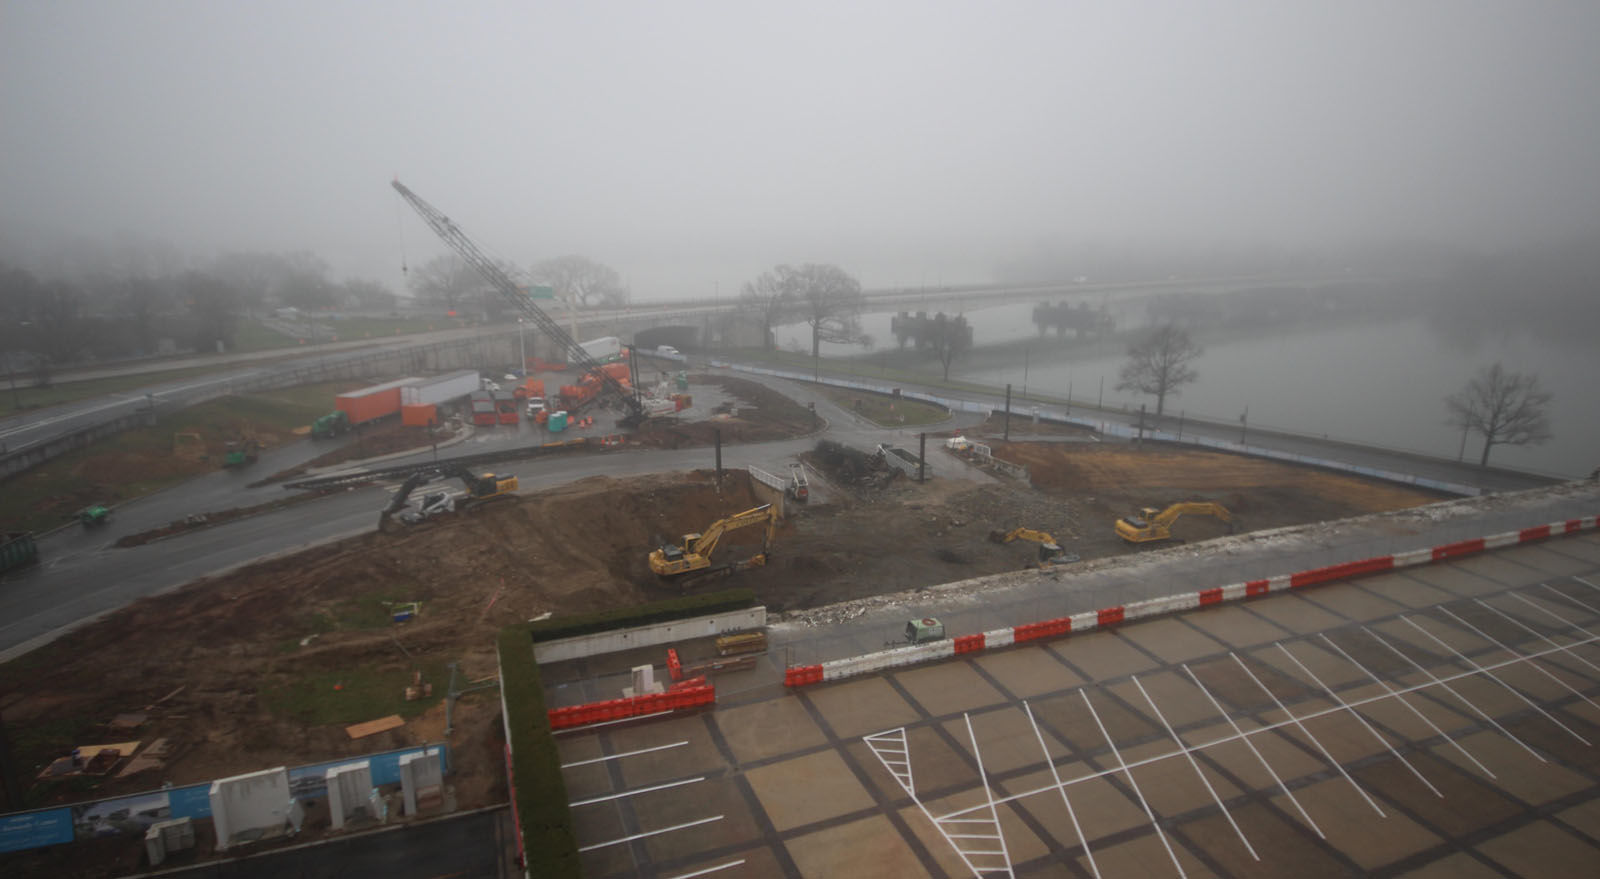 A view of construction underway on the Kennedy Center expansion project from Jan. 9, 2016. (Courtesy the Kennedy Center)